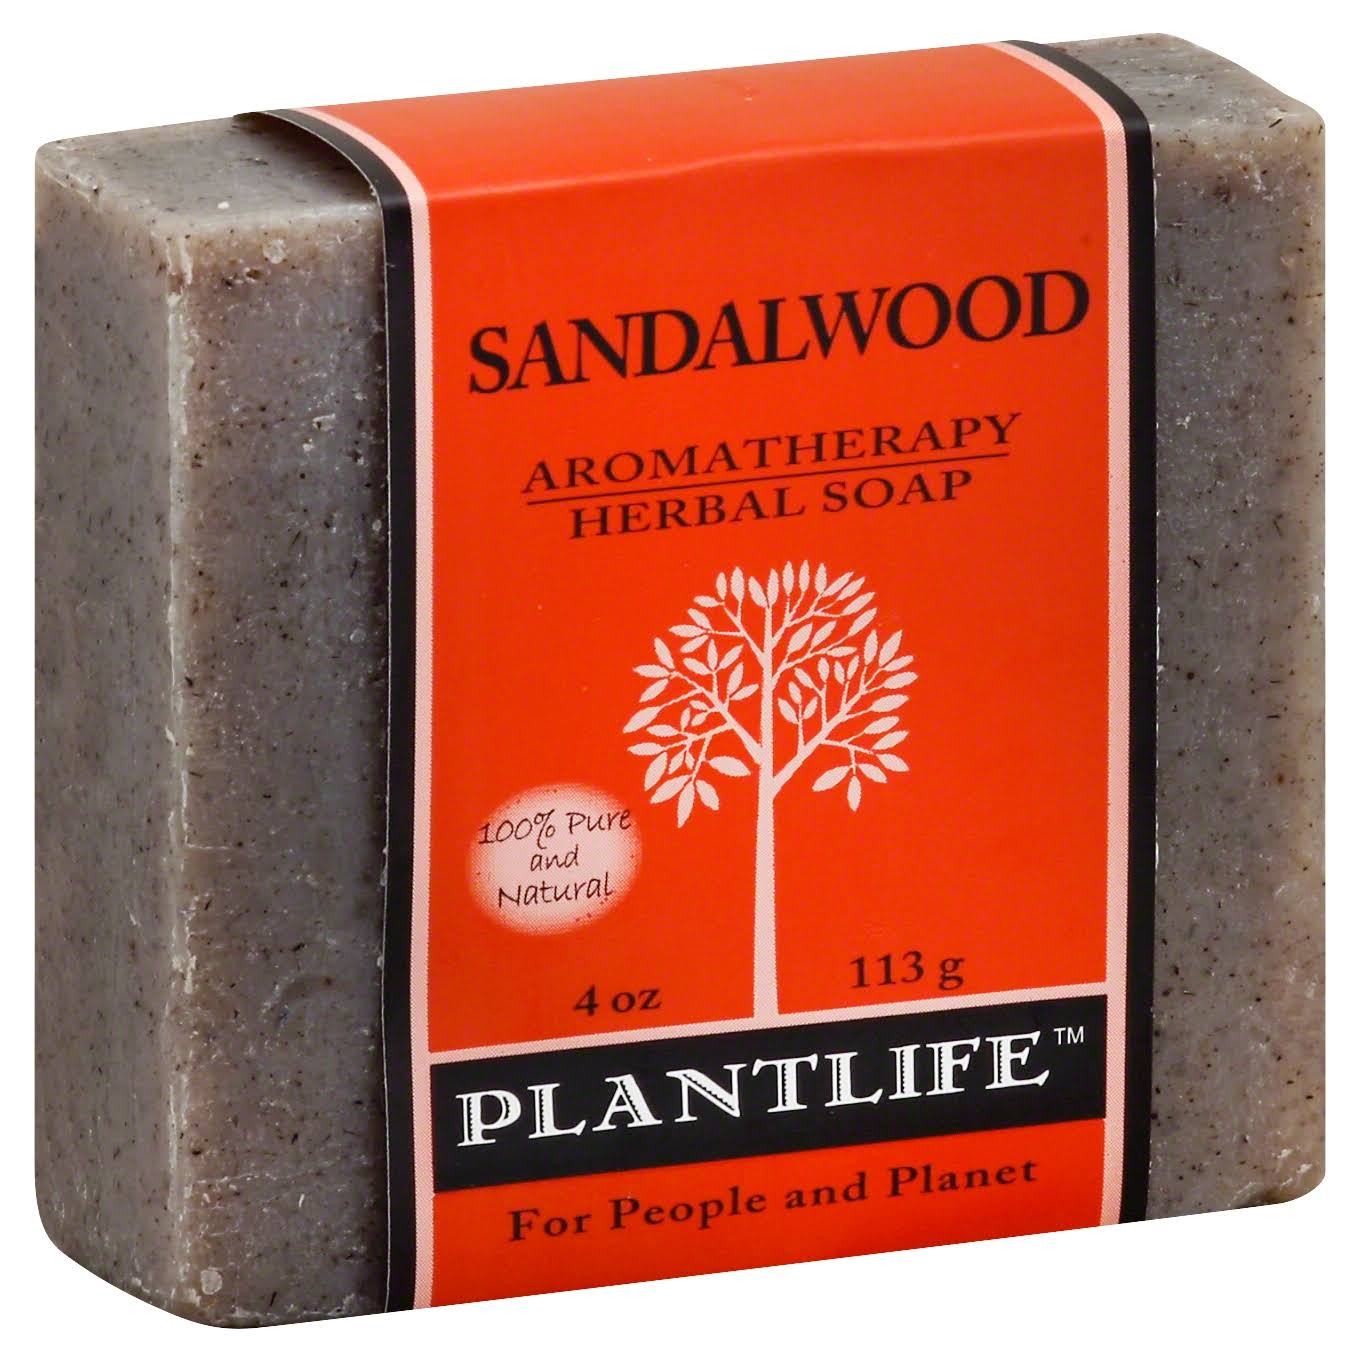 Plantlife Aromatherapy Herbal Soap - Sandalwood